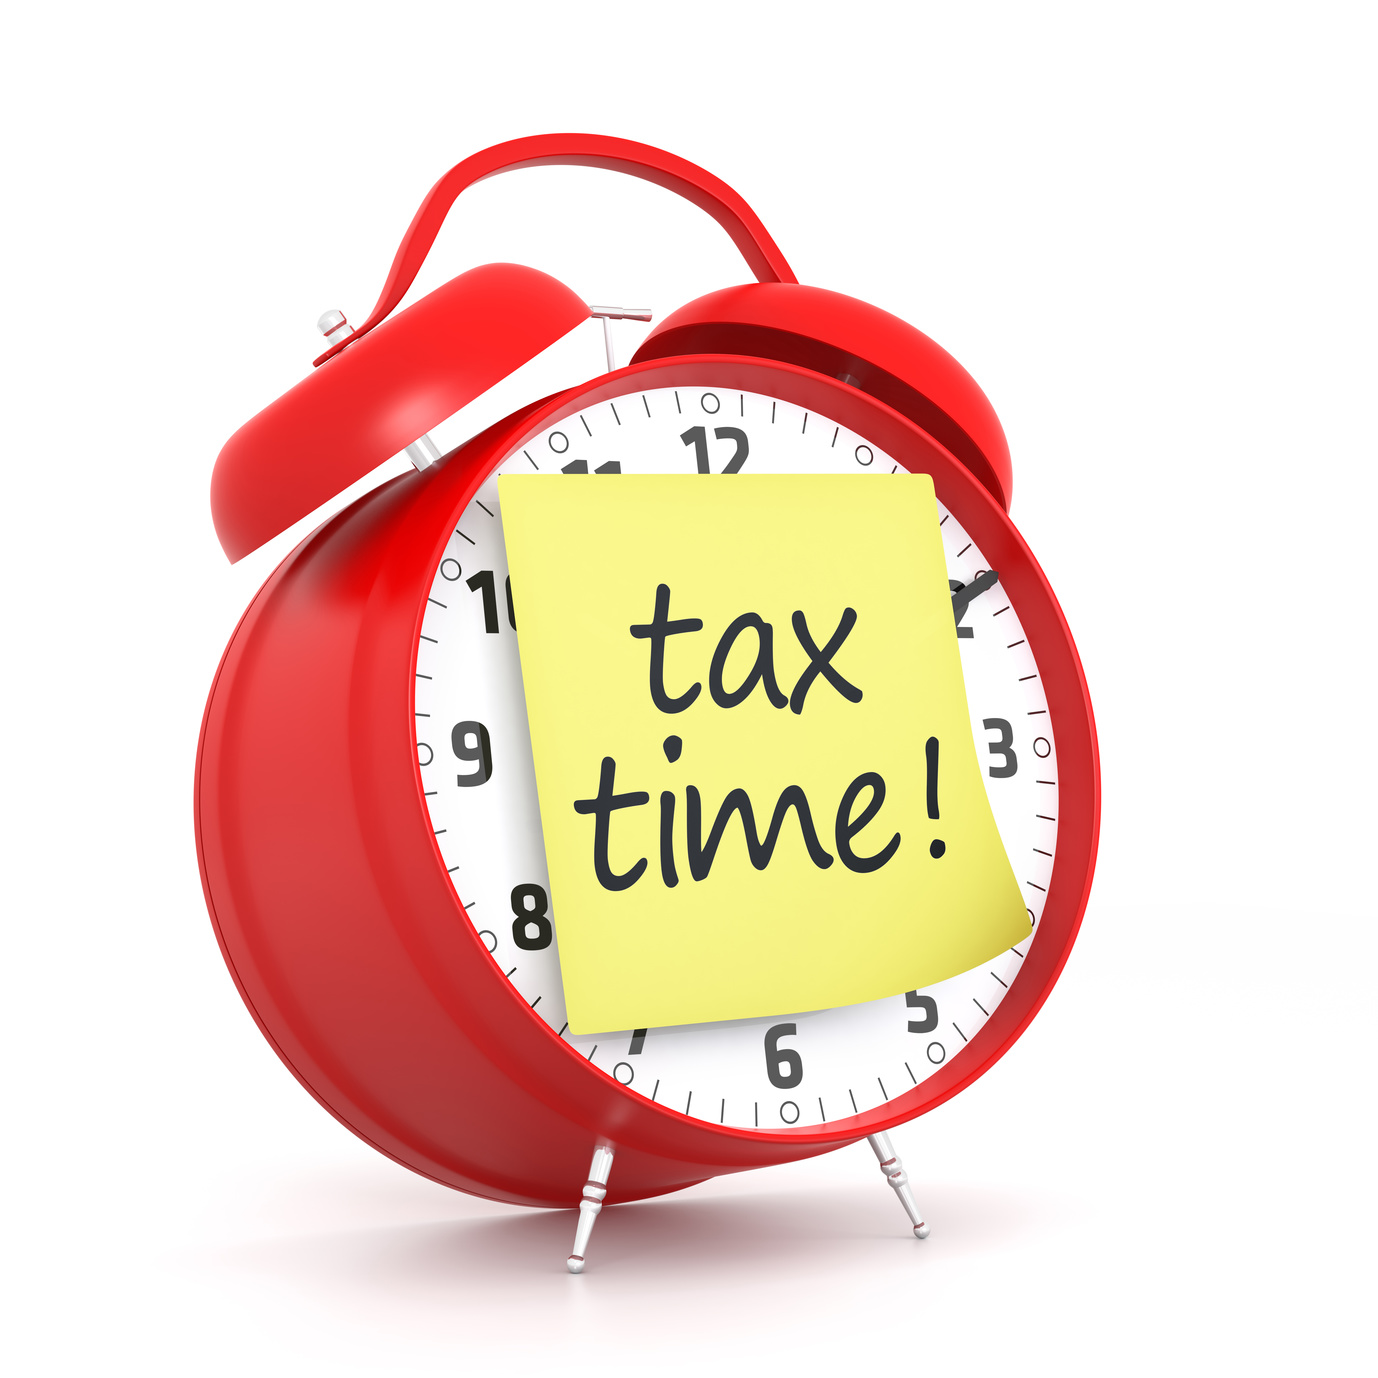 tax time post-it and red alarm clock